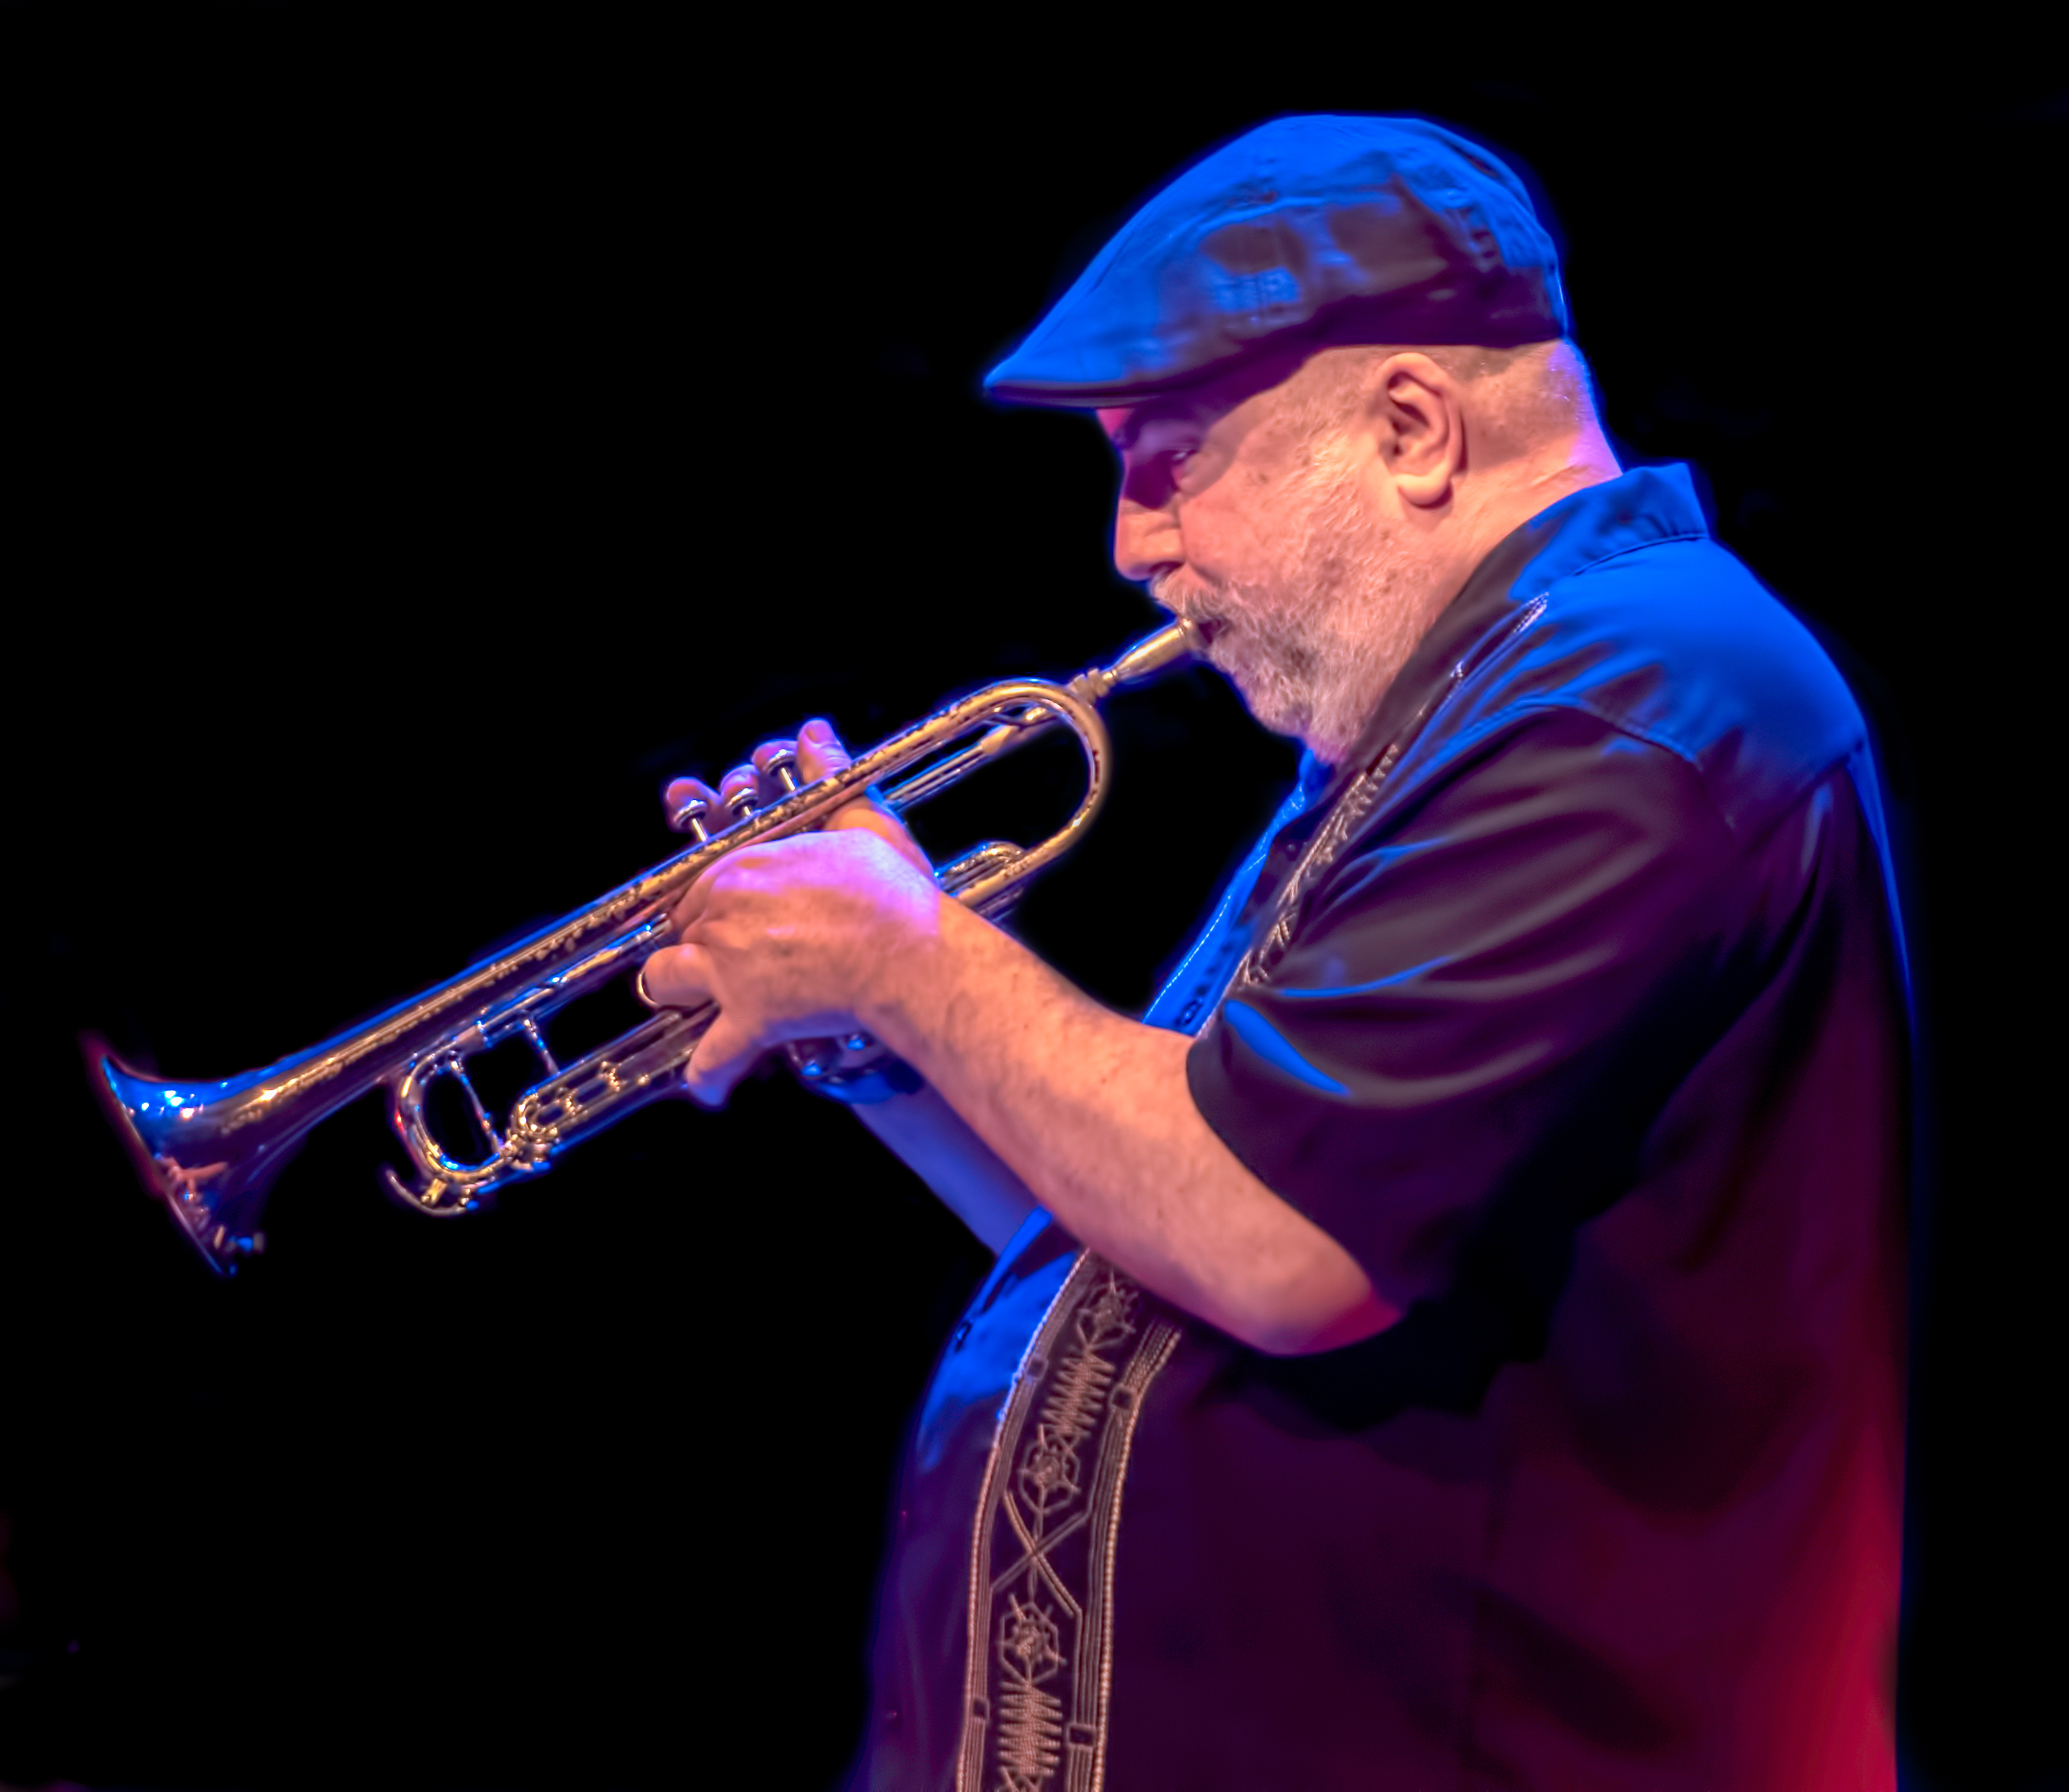 Randy Brecker With The Stern/brecker Band At The Montreal International Jazz Festival 2018